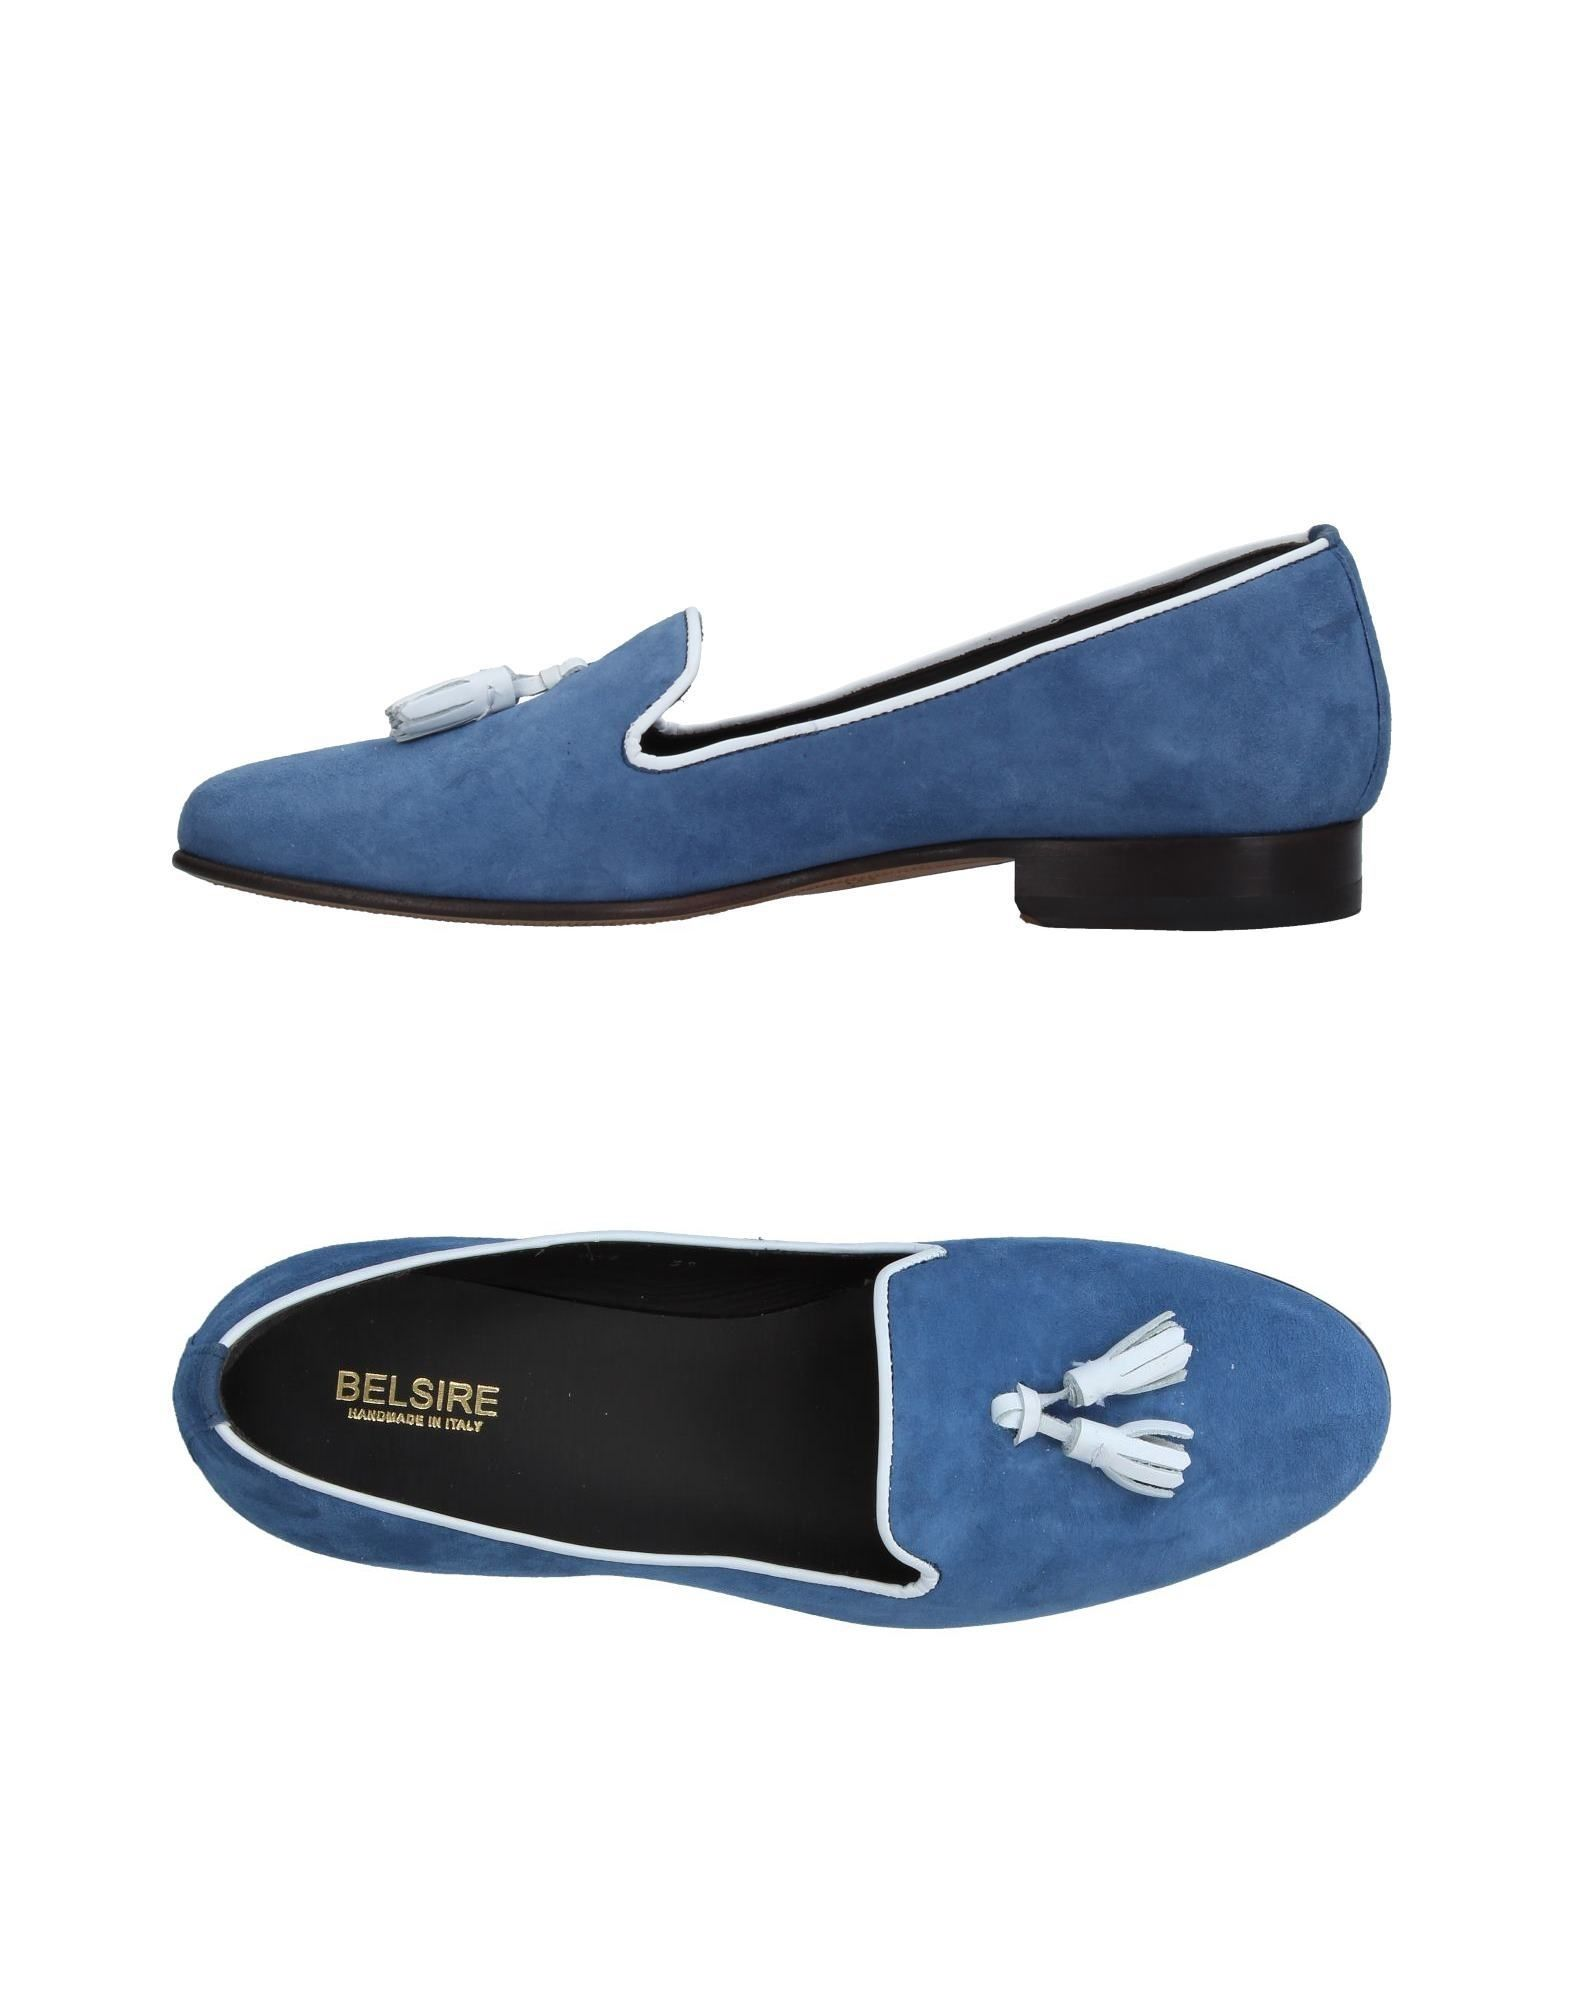 BELSIRE Loafers in Pastel Blue